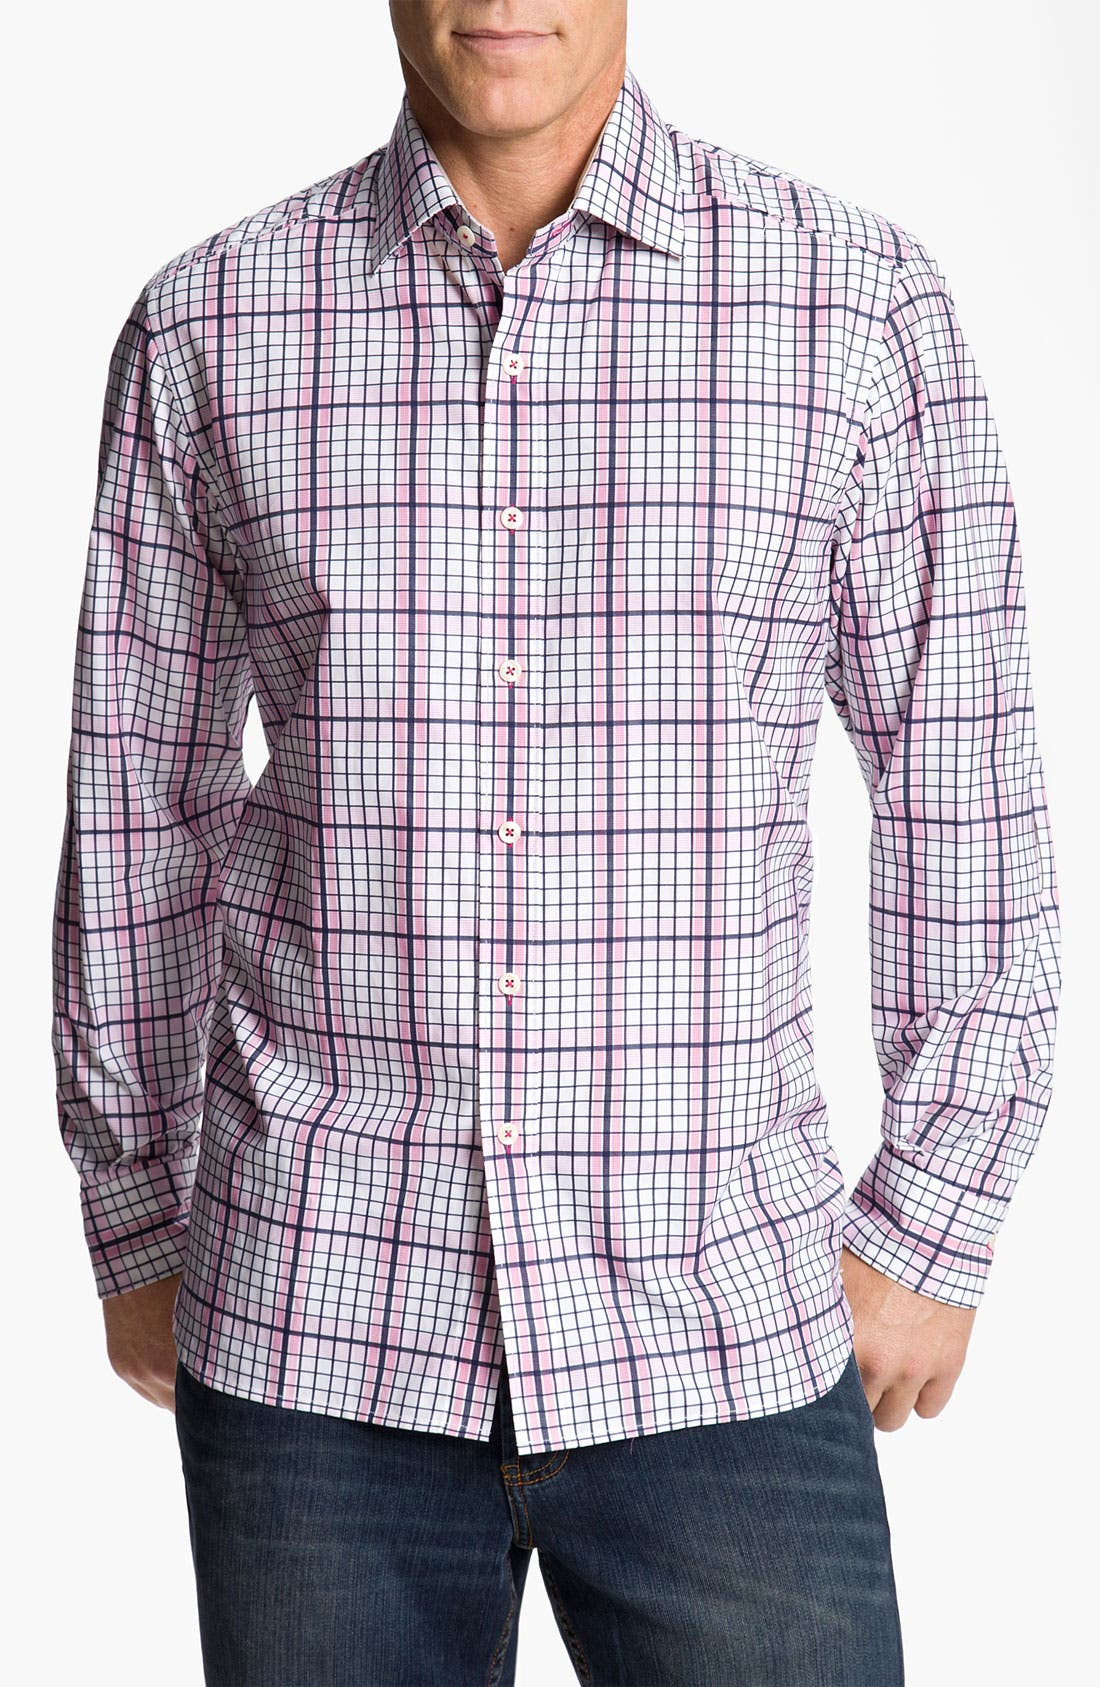 Alternate Image 1 Selected - Tommy Bahama 'Terrace Check' Sport Shirt